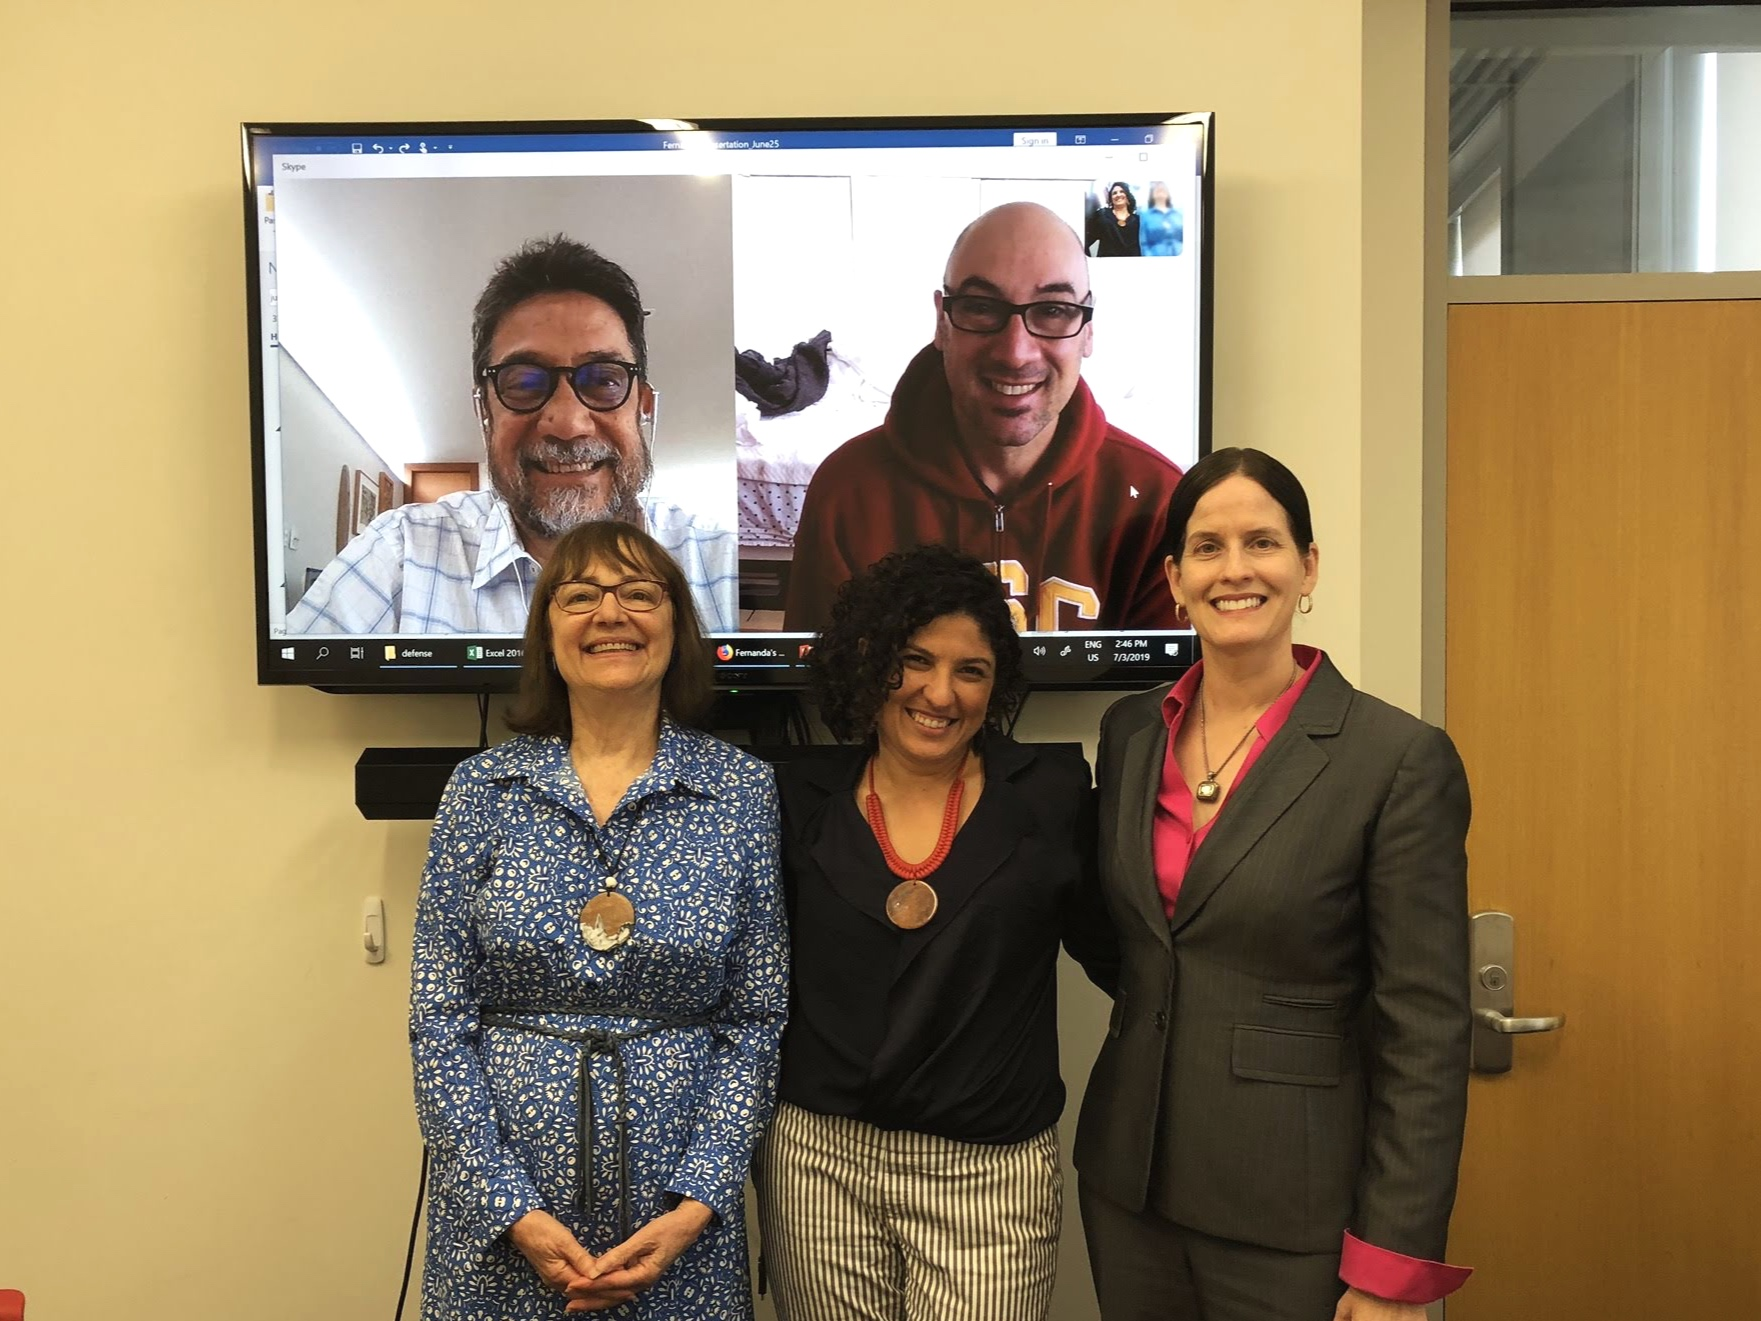 Dr. Fernanda Rosa with Dr Levinson and Dr. DeNardis; Dr. Almeida and Dr. Sinnreich on screen.